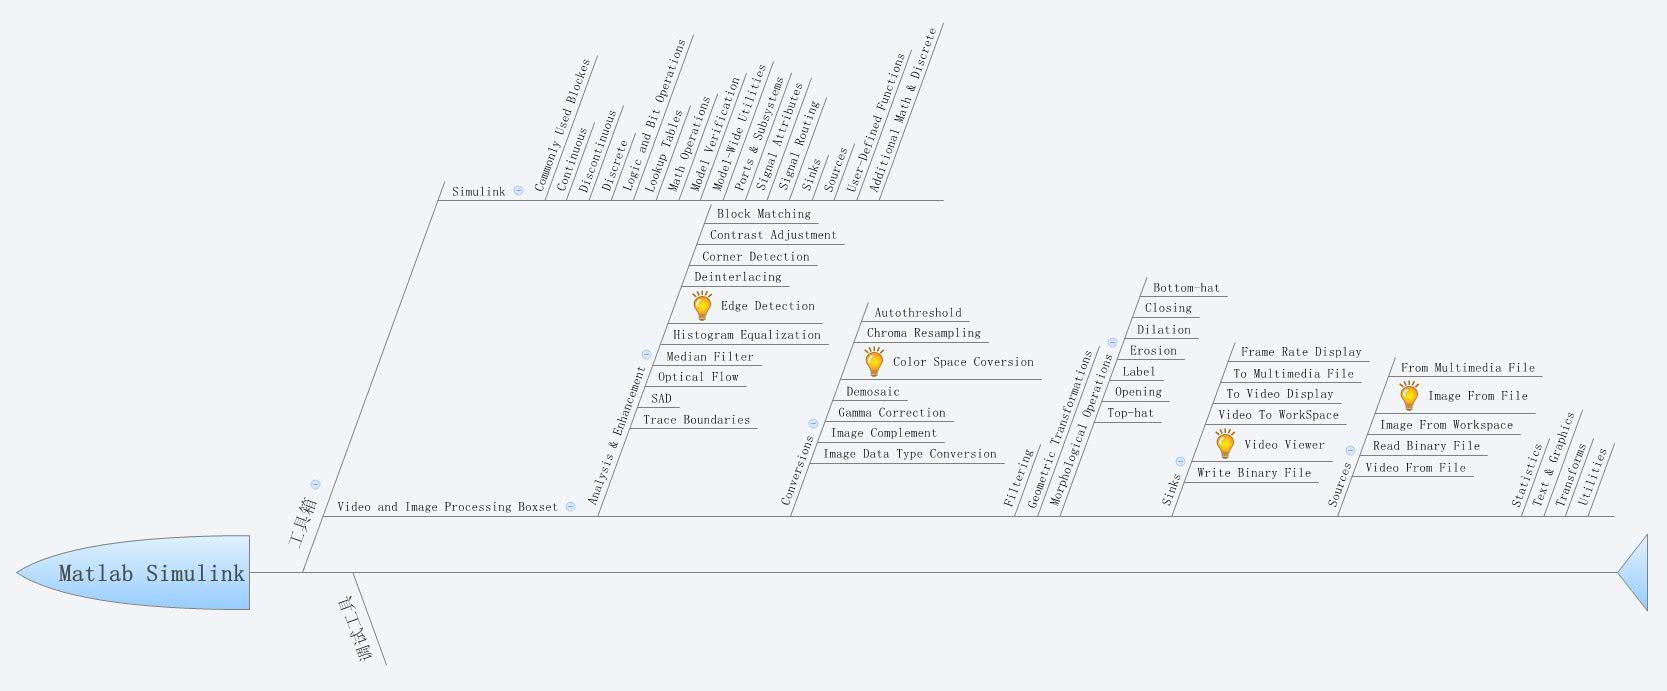 Matlab Simulink - XMind - Mind Mapping Software